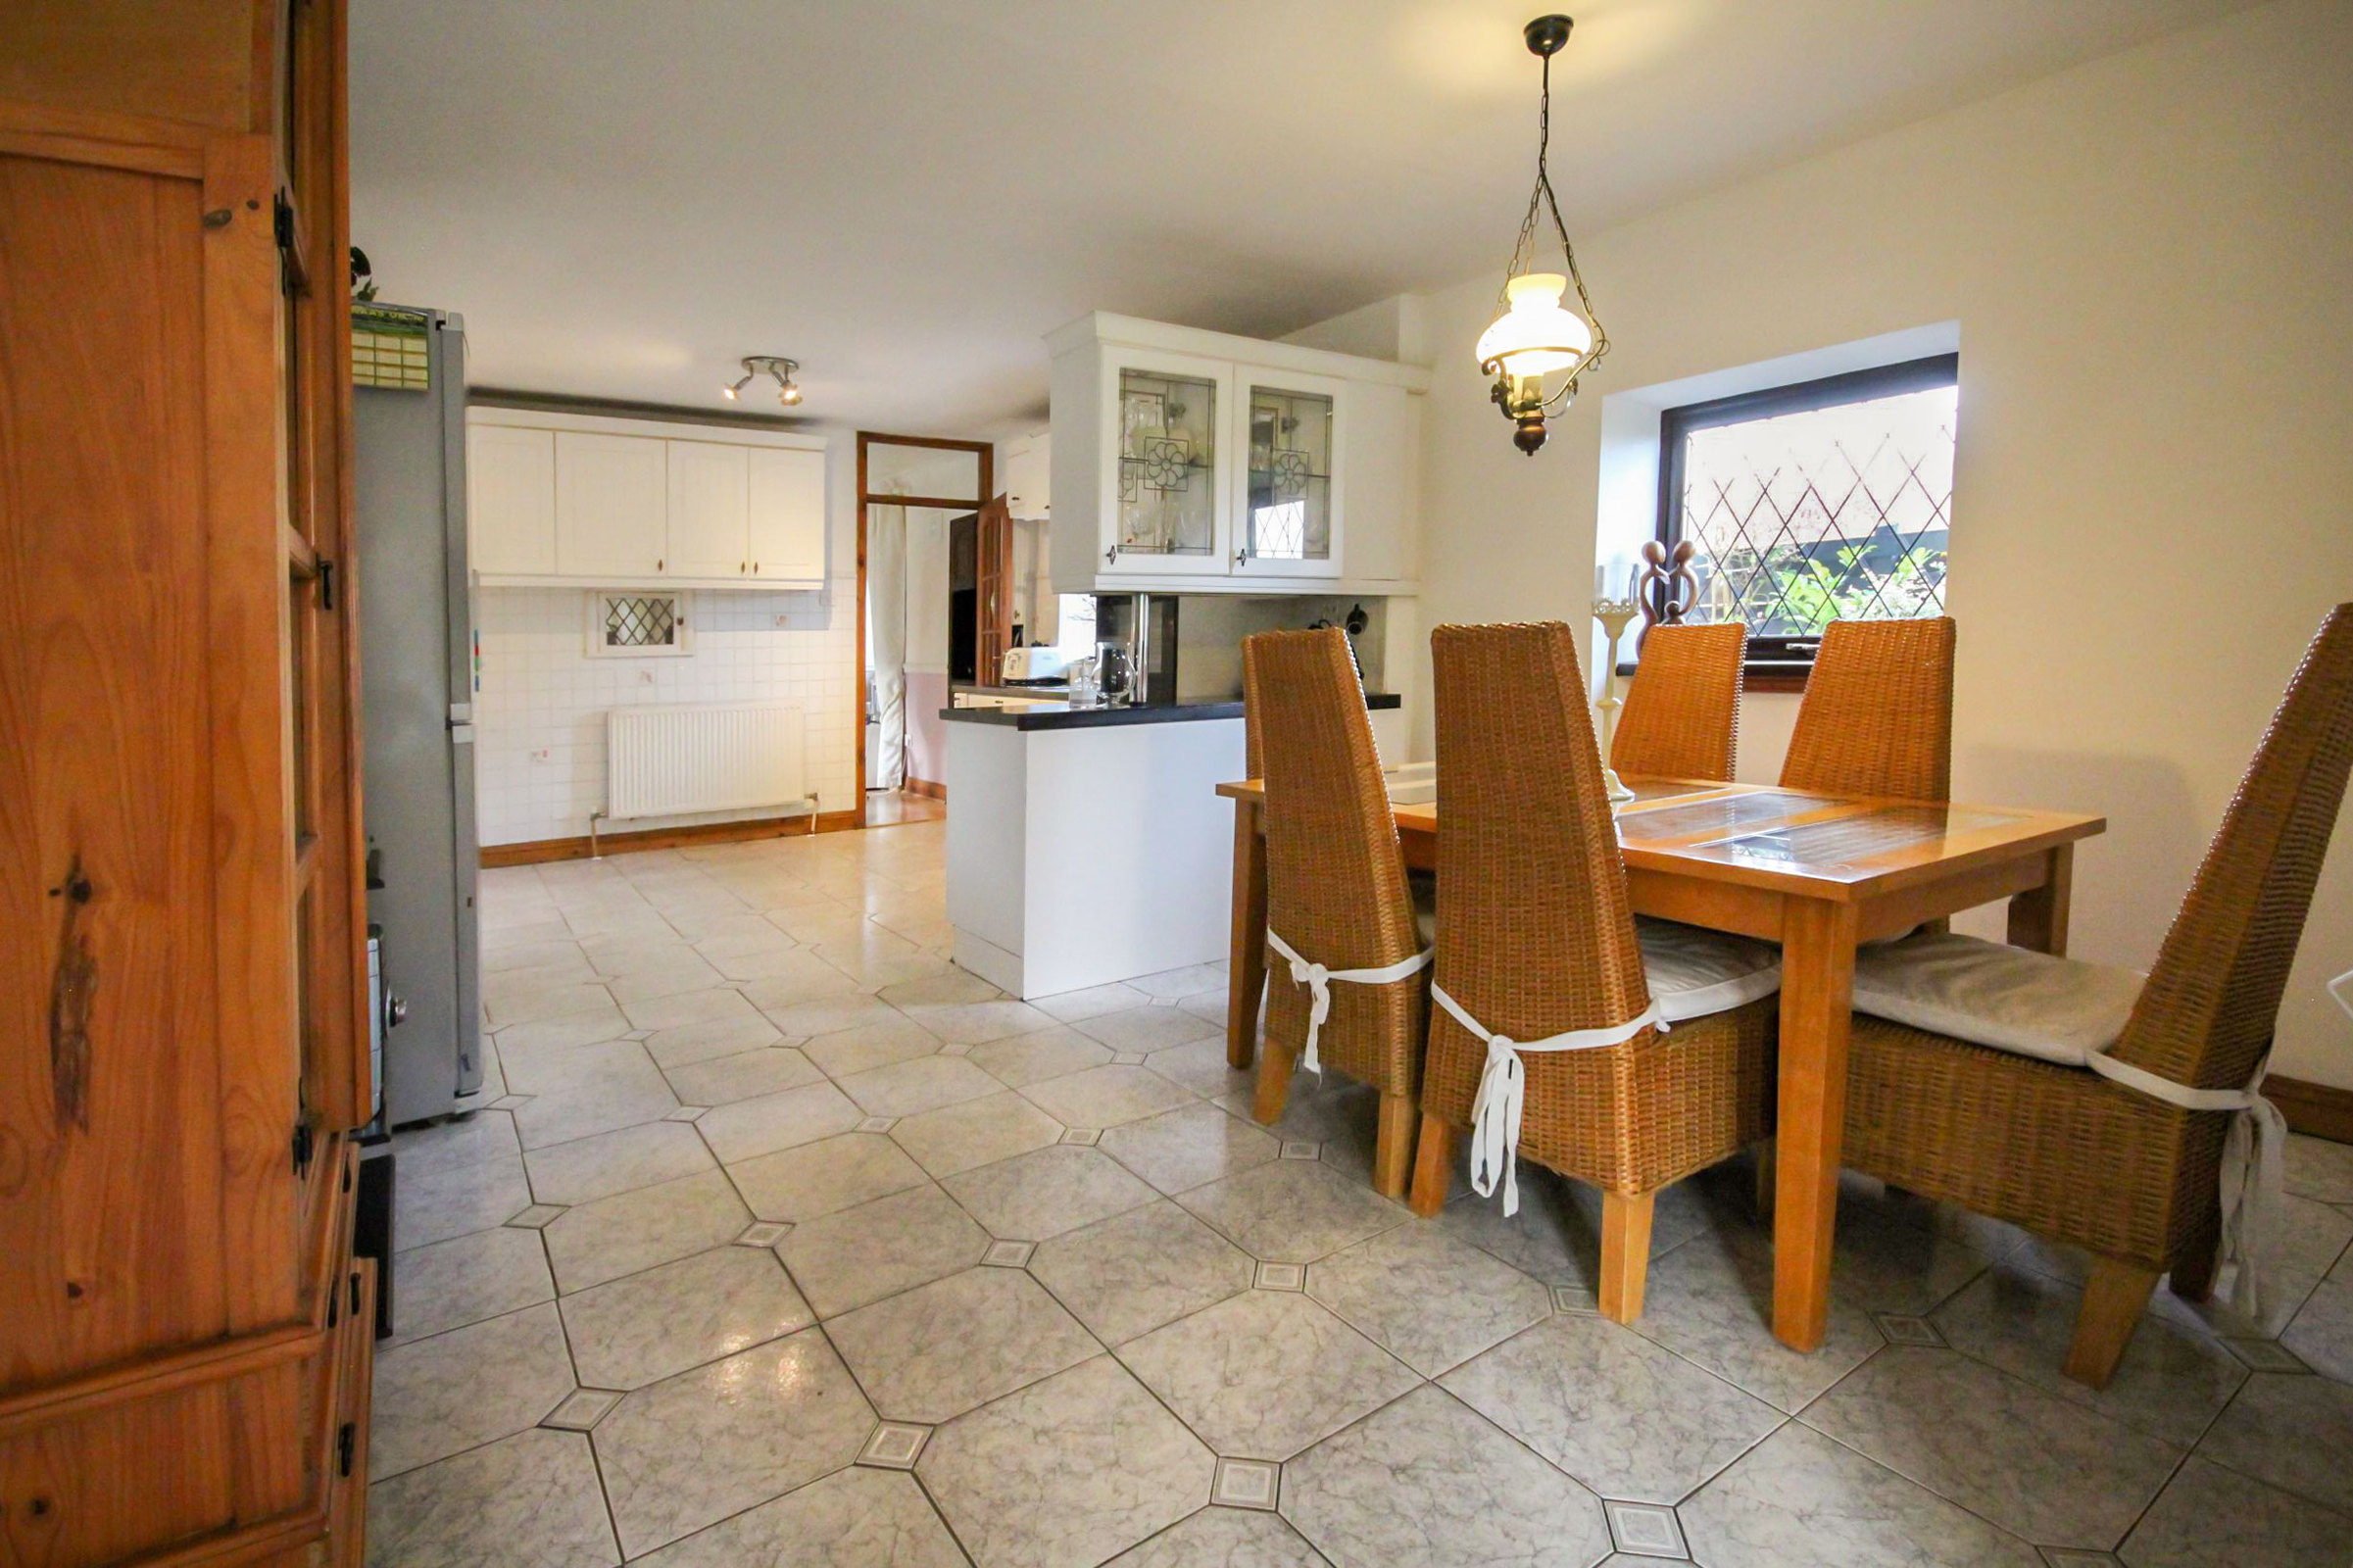 Millbank Cottage, Kilbride Road, Blessington, Co. Wicklow